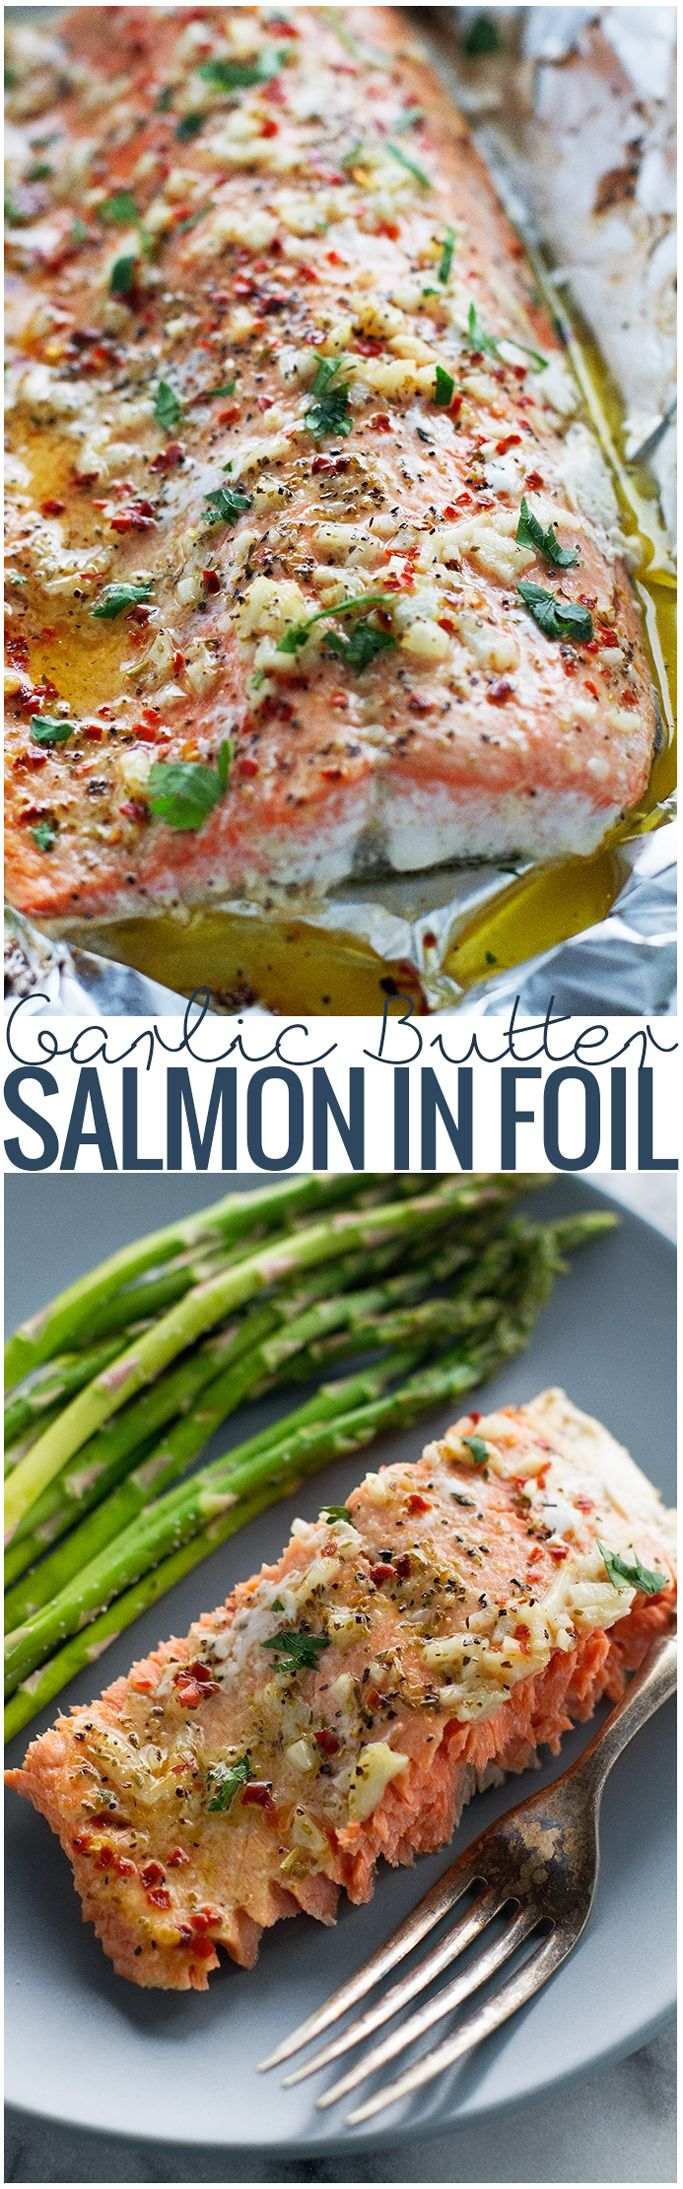 Garlic - Butter Baked Salmon